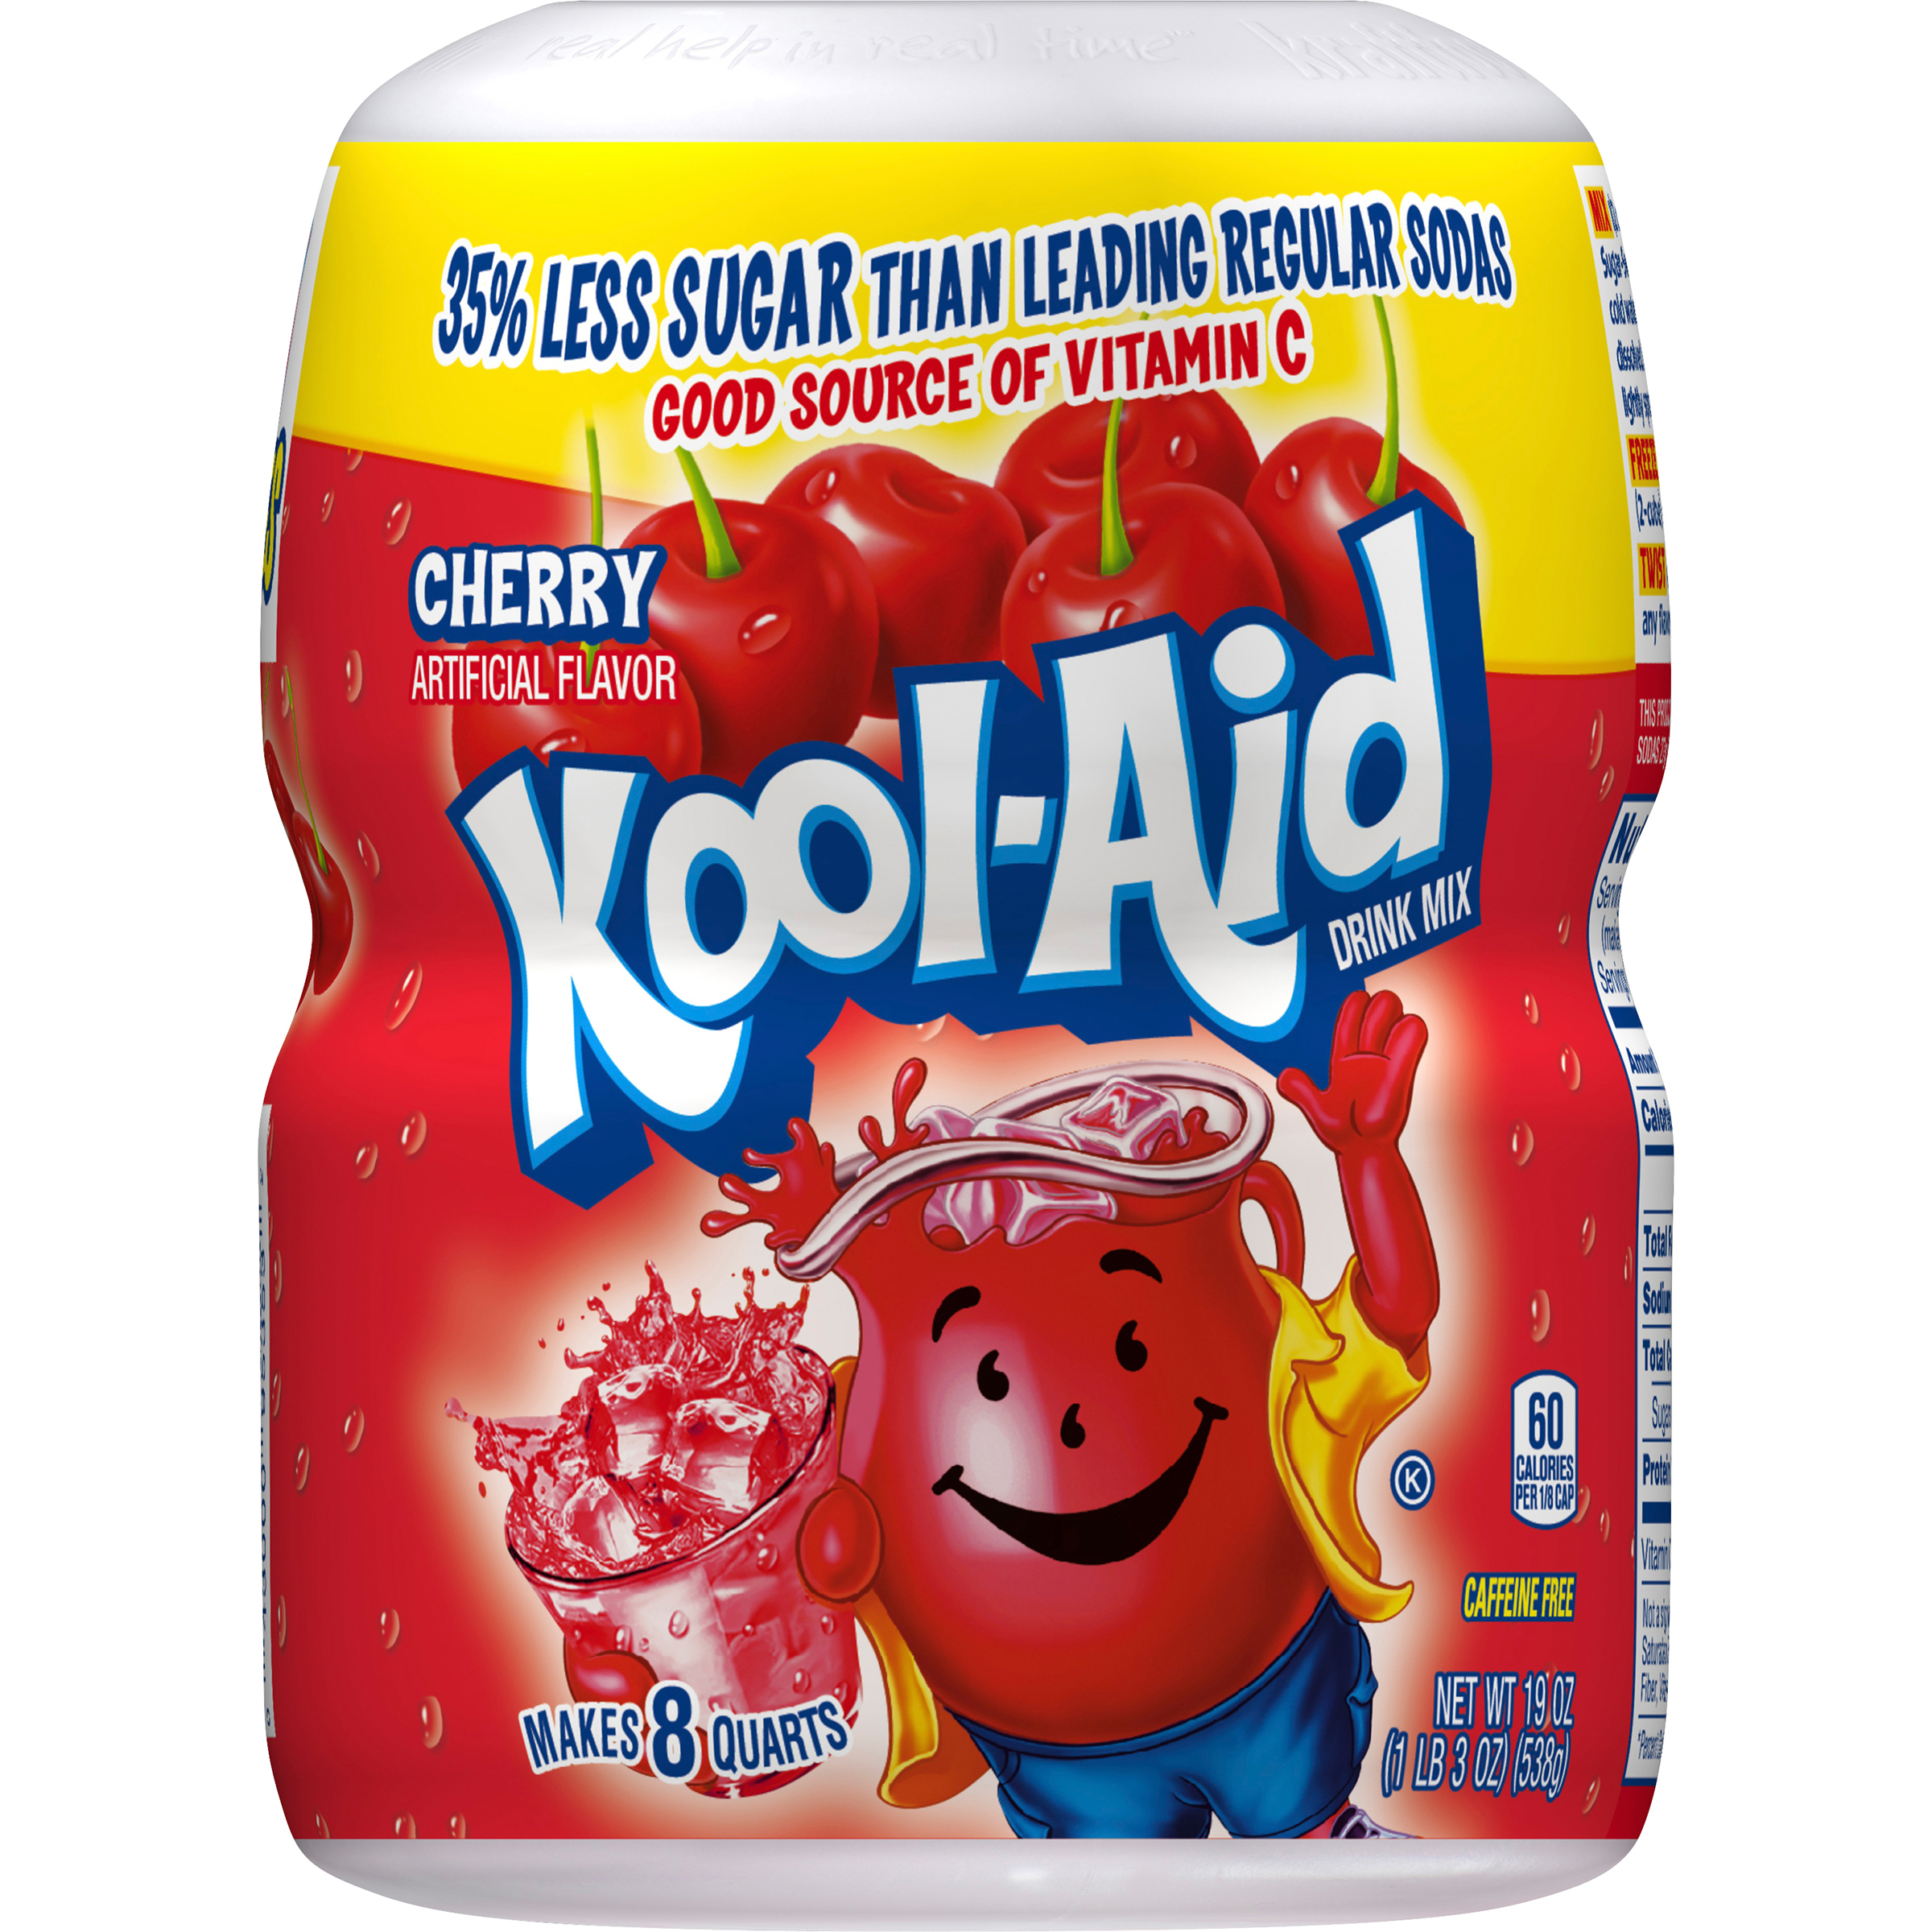 Kool-Aid Drink Mix, Cherry, 19 Oz, 1 Count